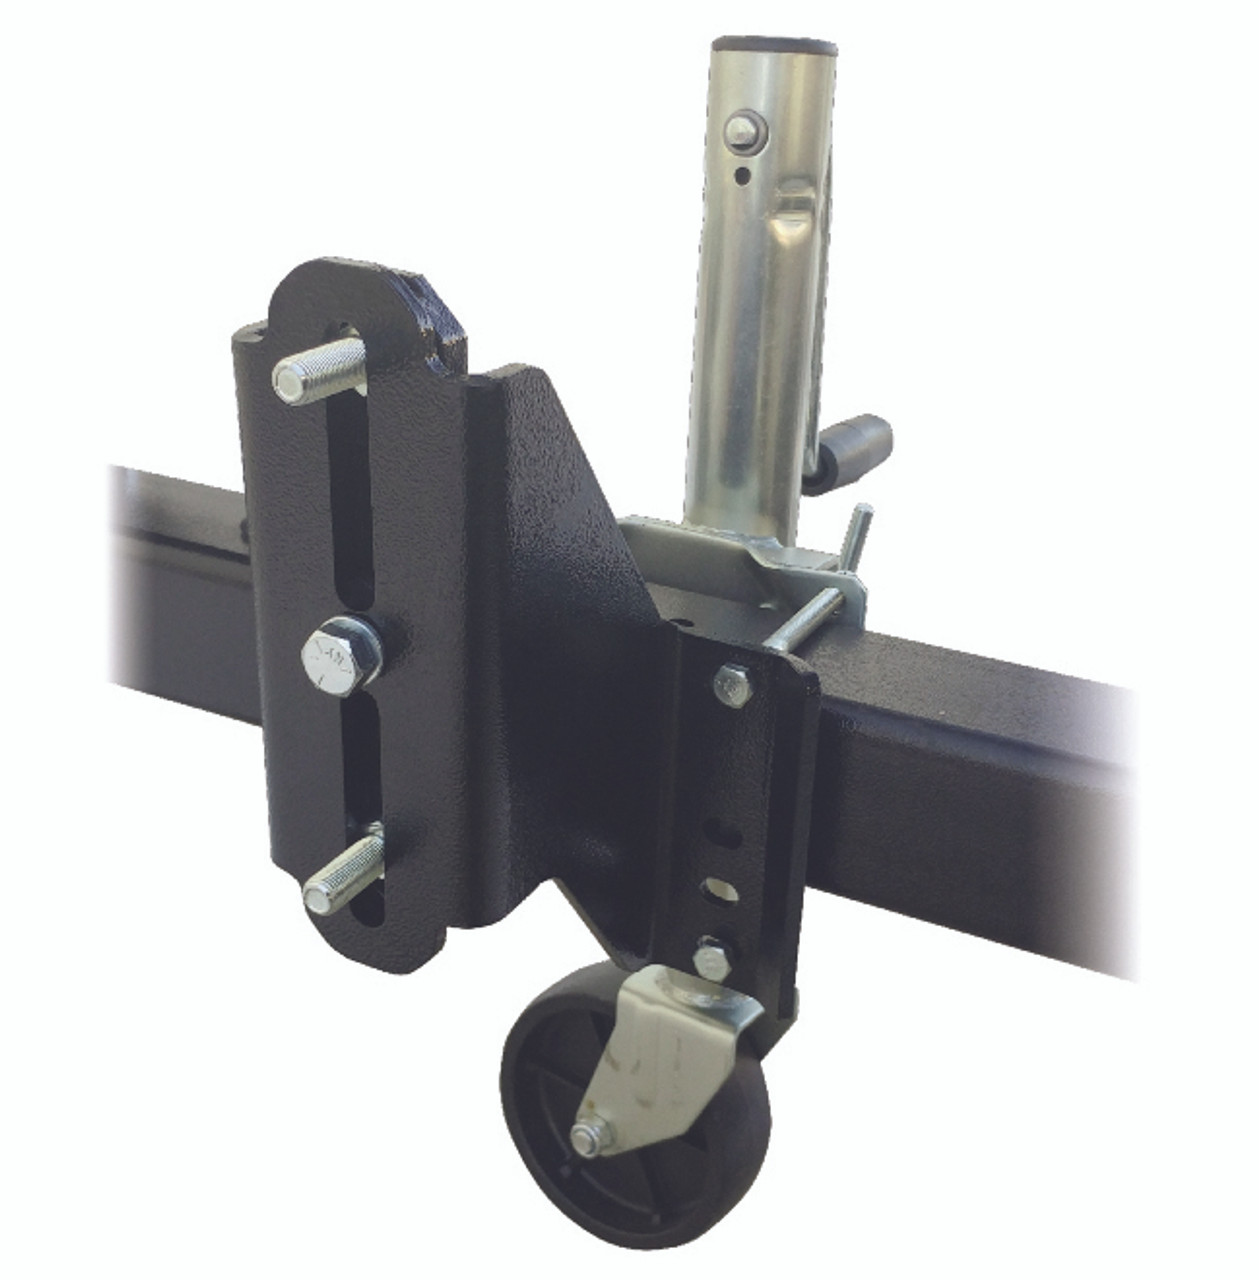 15853-76 --- Universal Jack Mounted Spare Tire Carrier - Bolt On